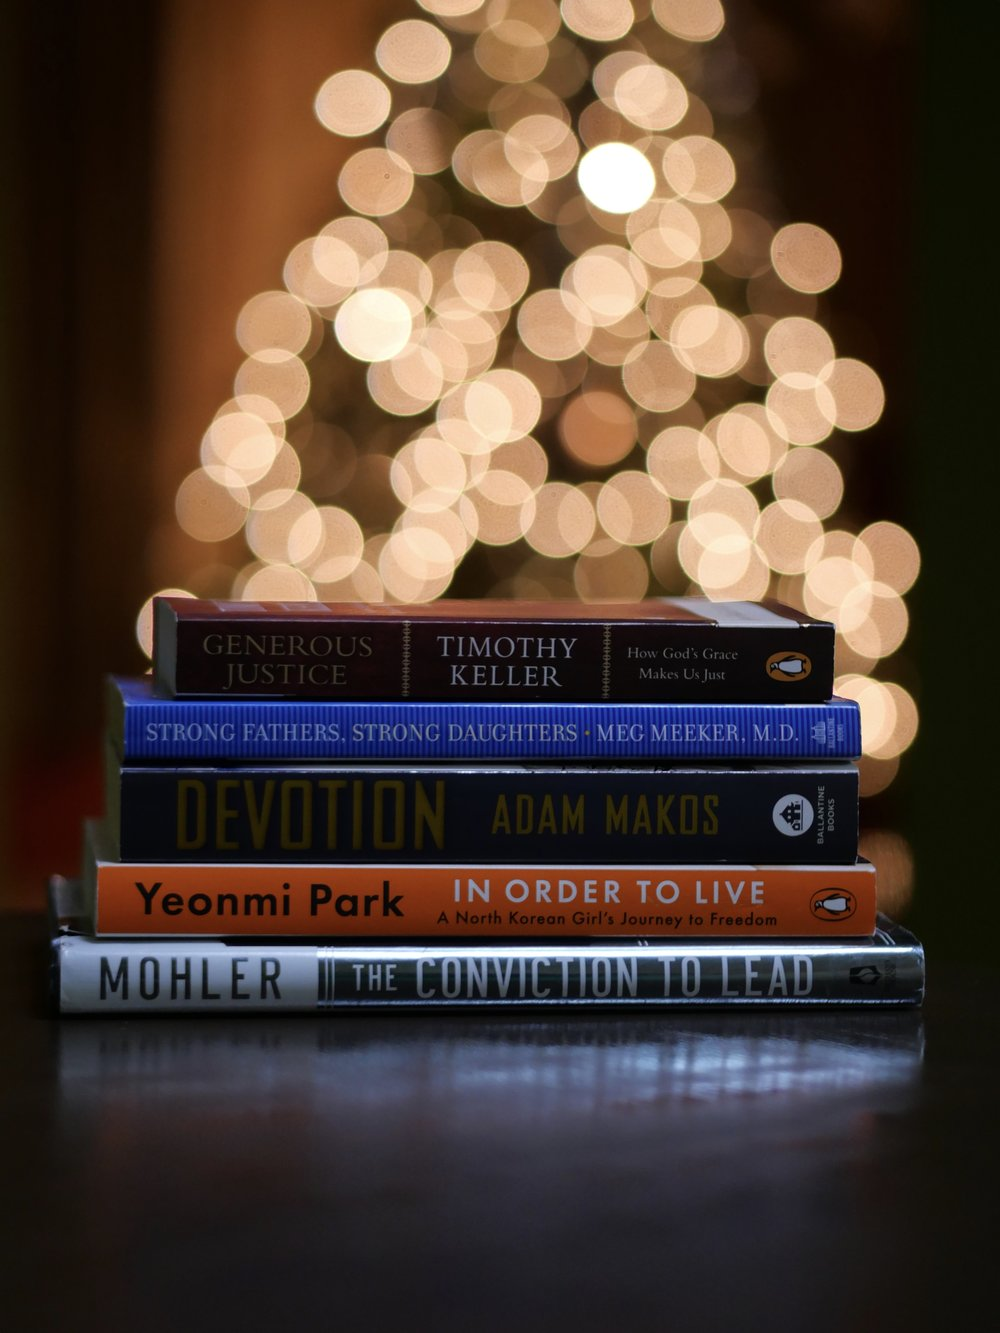 2018 Favorite Books - I enjoy a good book whether it's an audiobook, ebook, or an old fashioned paper book. This year, I finished over 100 books, you can see the full list here. It was hard to decide, but I think these are my fave five.